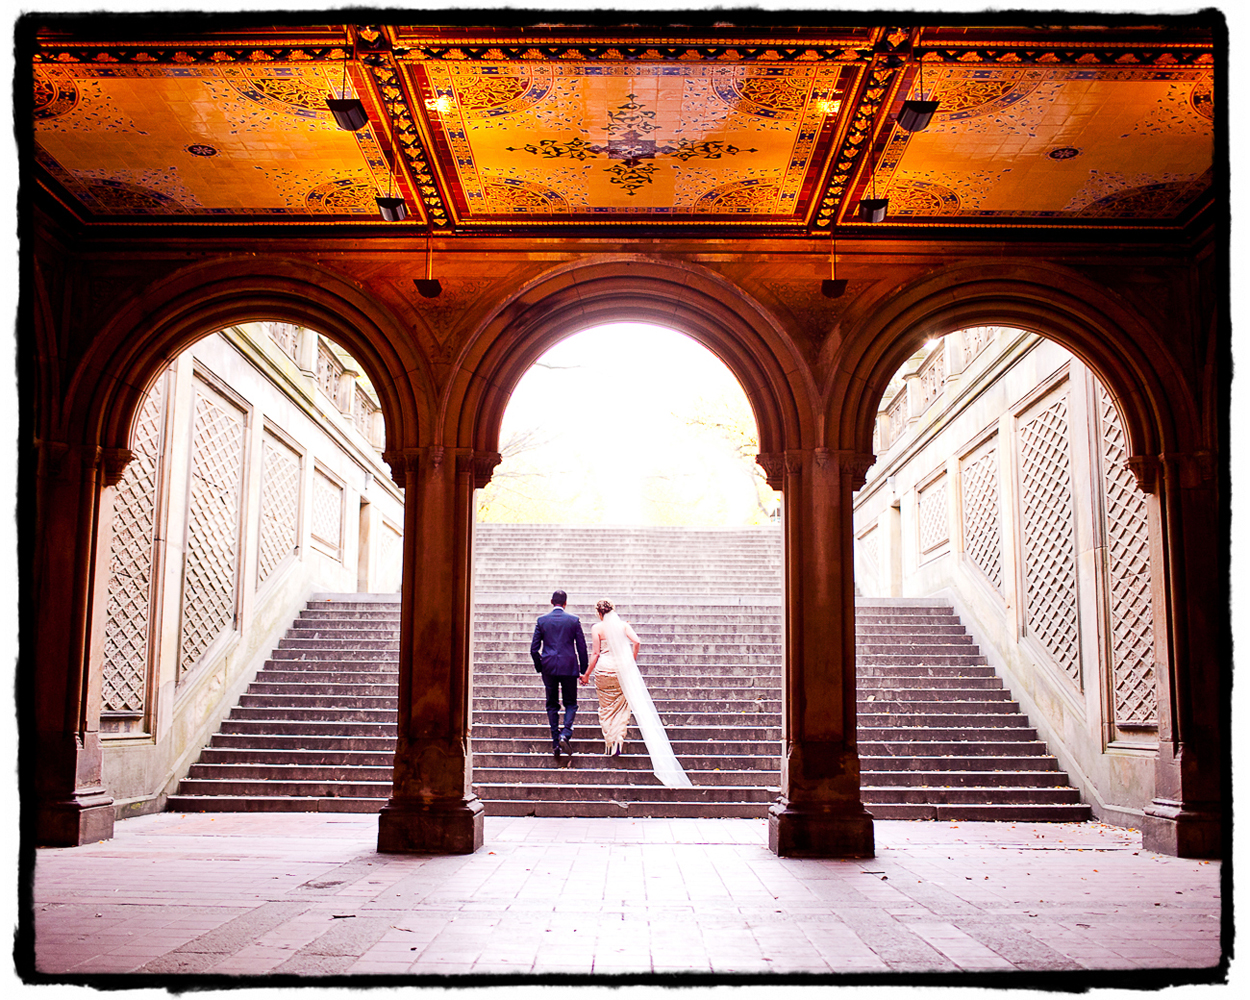 The staircase between the Bethesda Fountain and the Mall at Central Park is a beautiful and iconic spot for a wedding portrait.  I got super lucky with the timing of this mid-afternoon wedding and there was nobody else around when we took this shot.